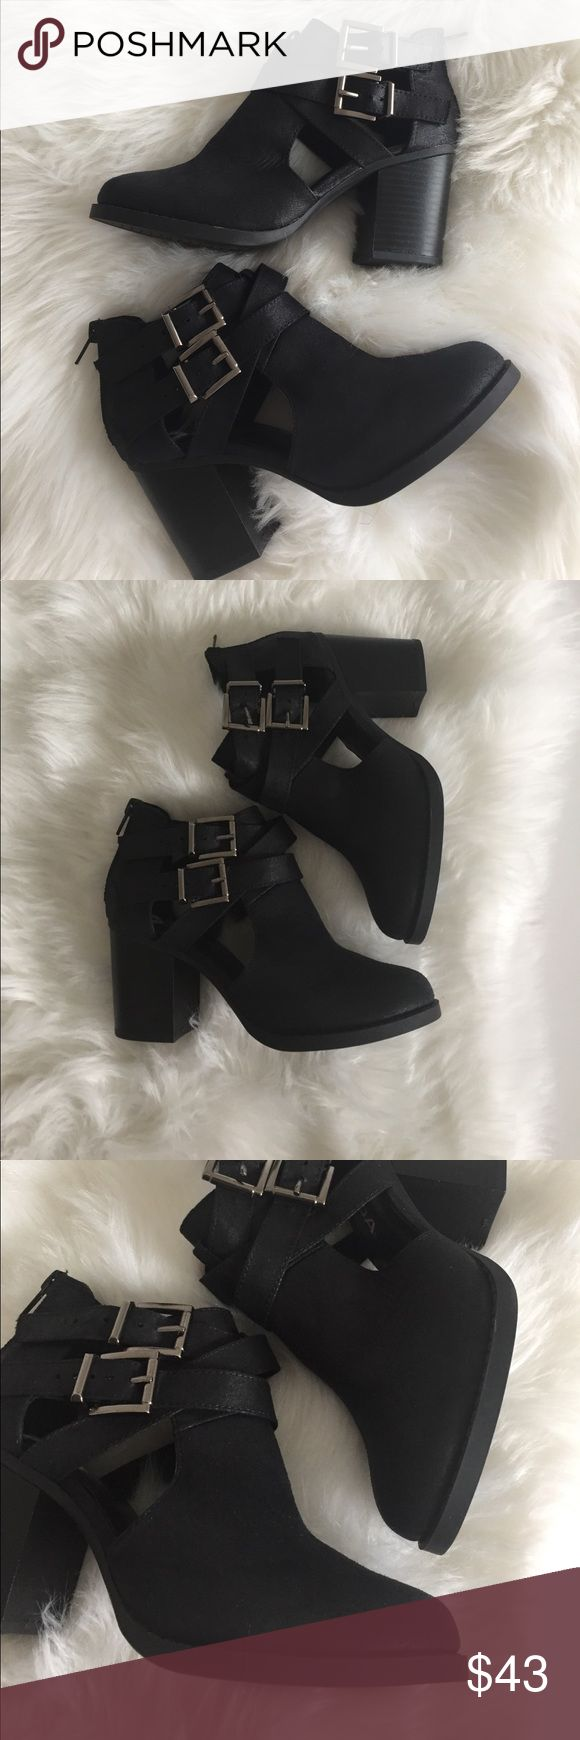 NWOT Black booties SODA Brand SODA  Black booties with buckles  NWOT - no box  Size 5.5  ❗️offers welcome ❗️ Soda Shoes Ankle Boots & Booties